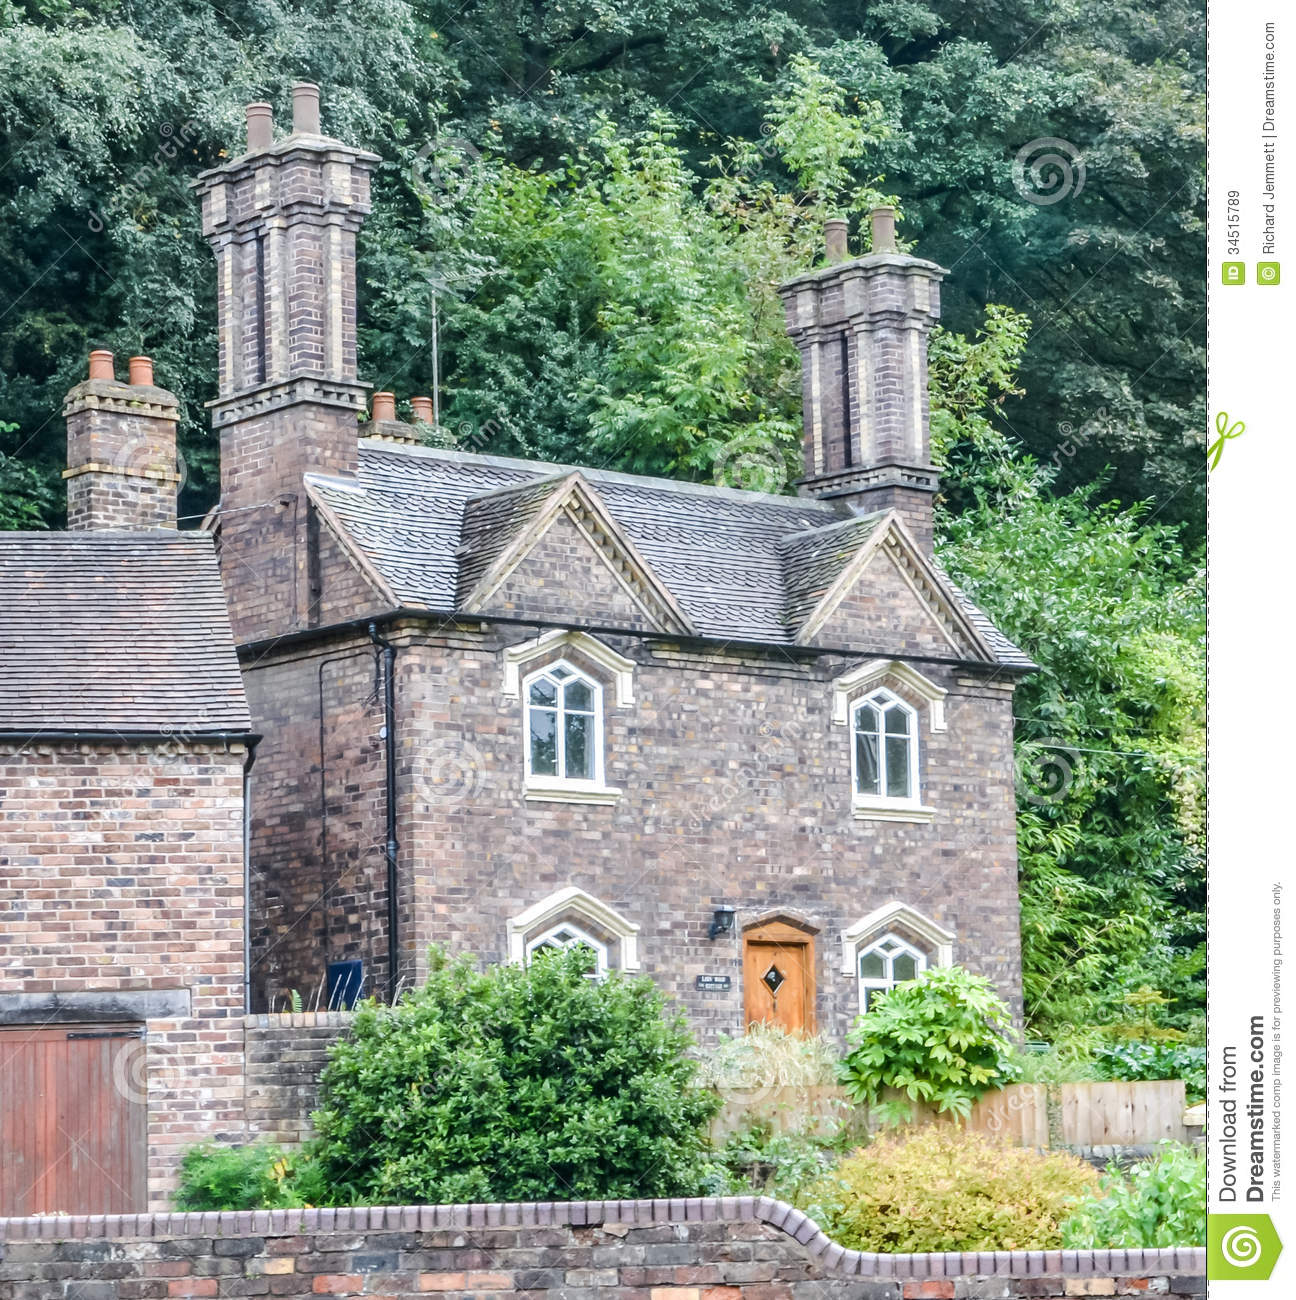 Fabulous Small English Stone Cottage Royalty Free Stock Images Image Largest Home Design Picture Inspirations Pitcheantrous